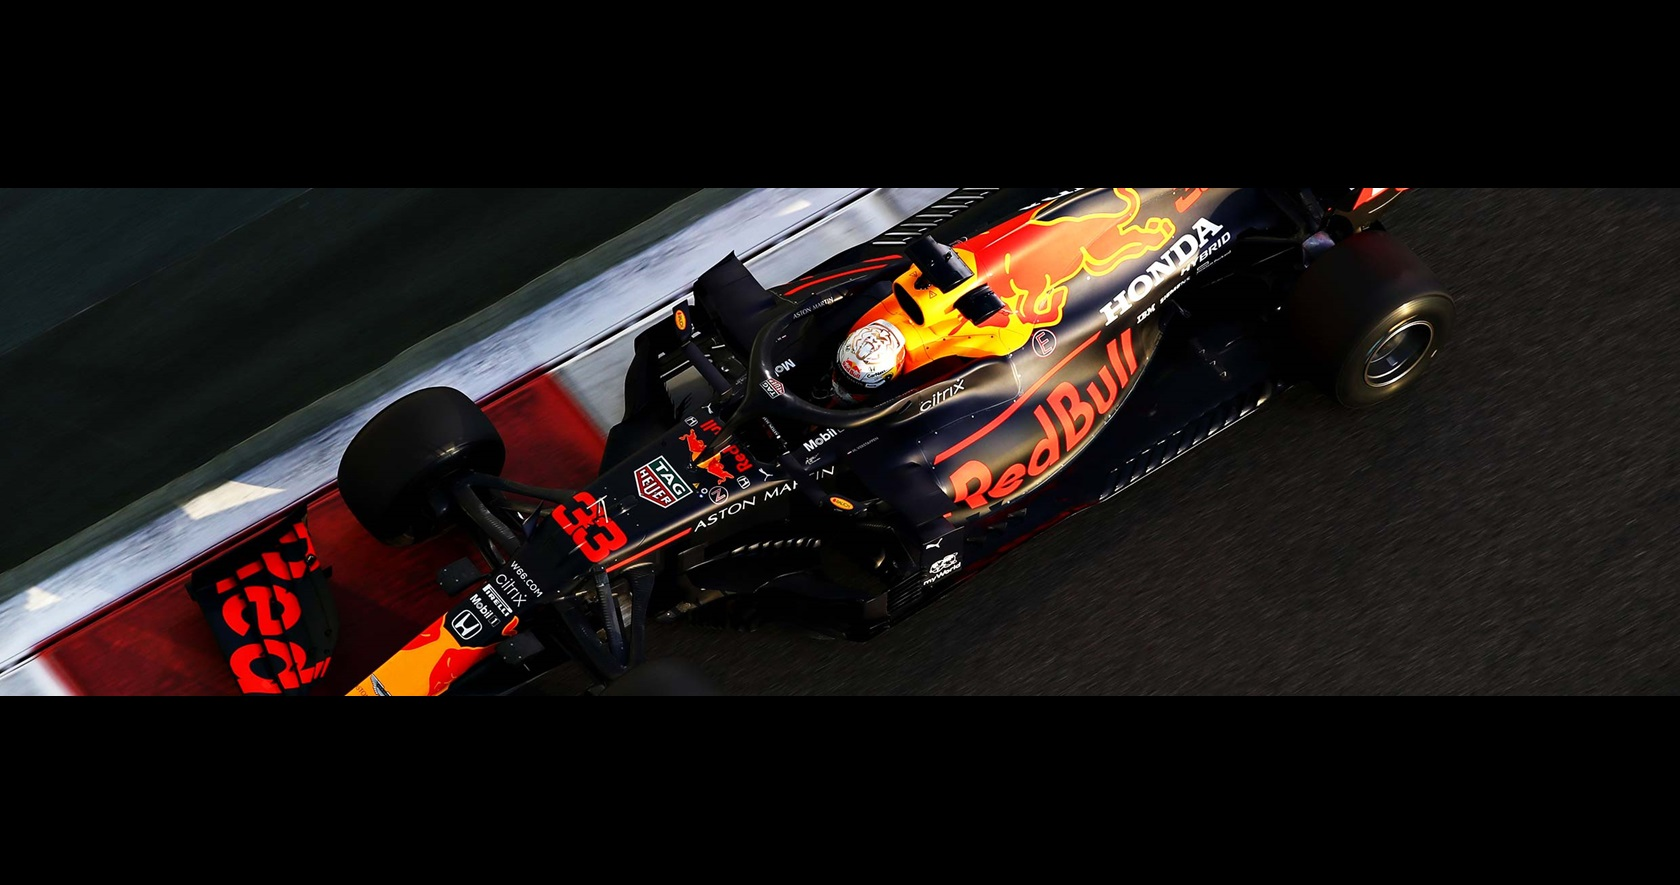 Infiniti-red-bull-racing_slide